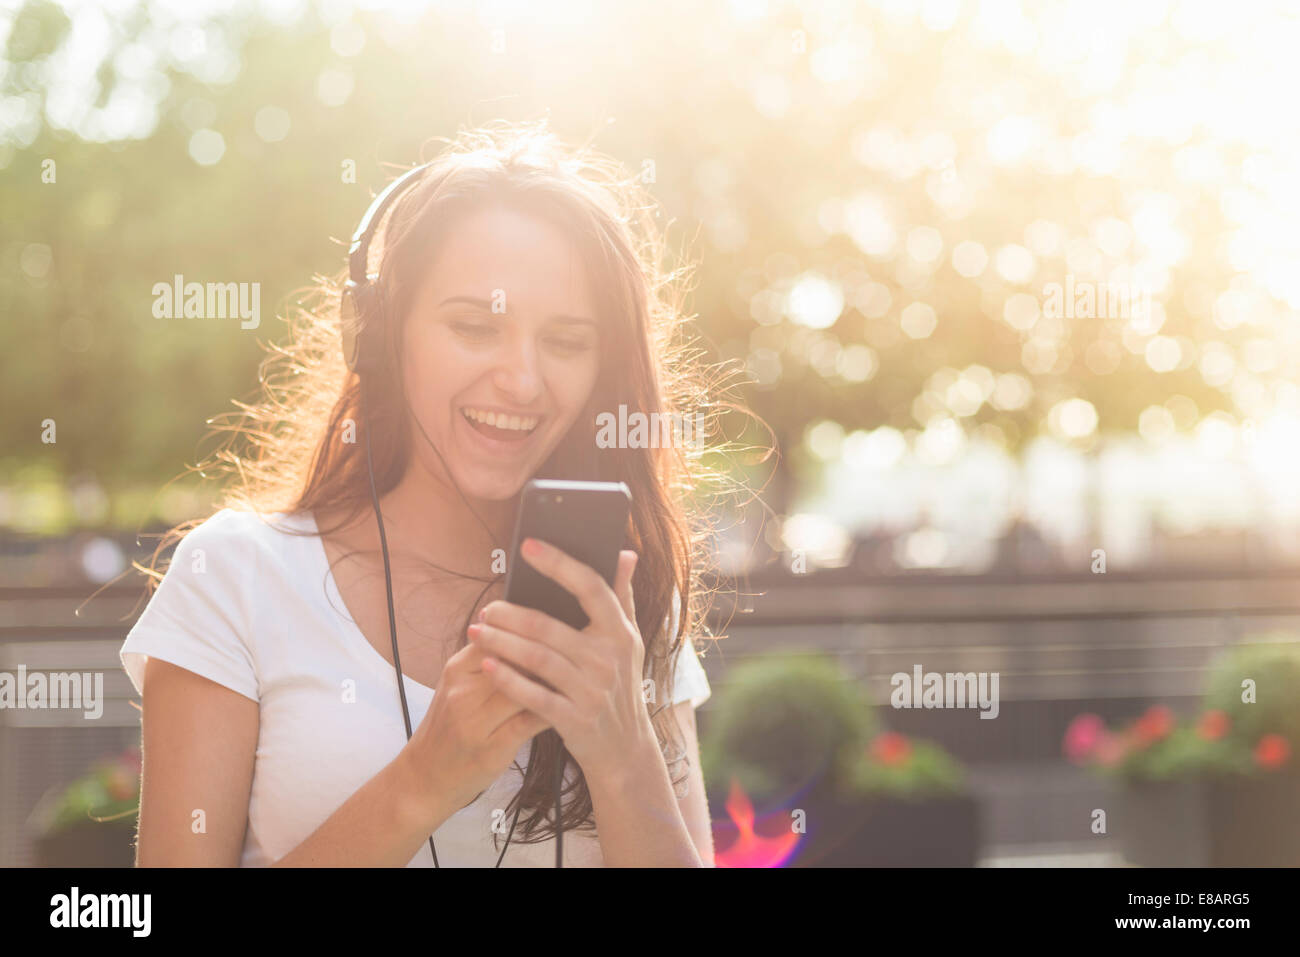 Young woman wearing headphones listening to music Photo Stock